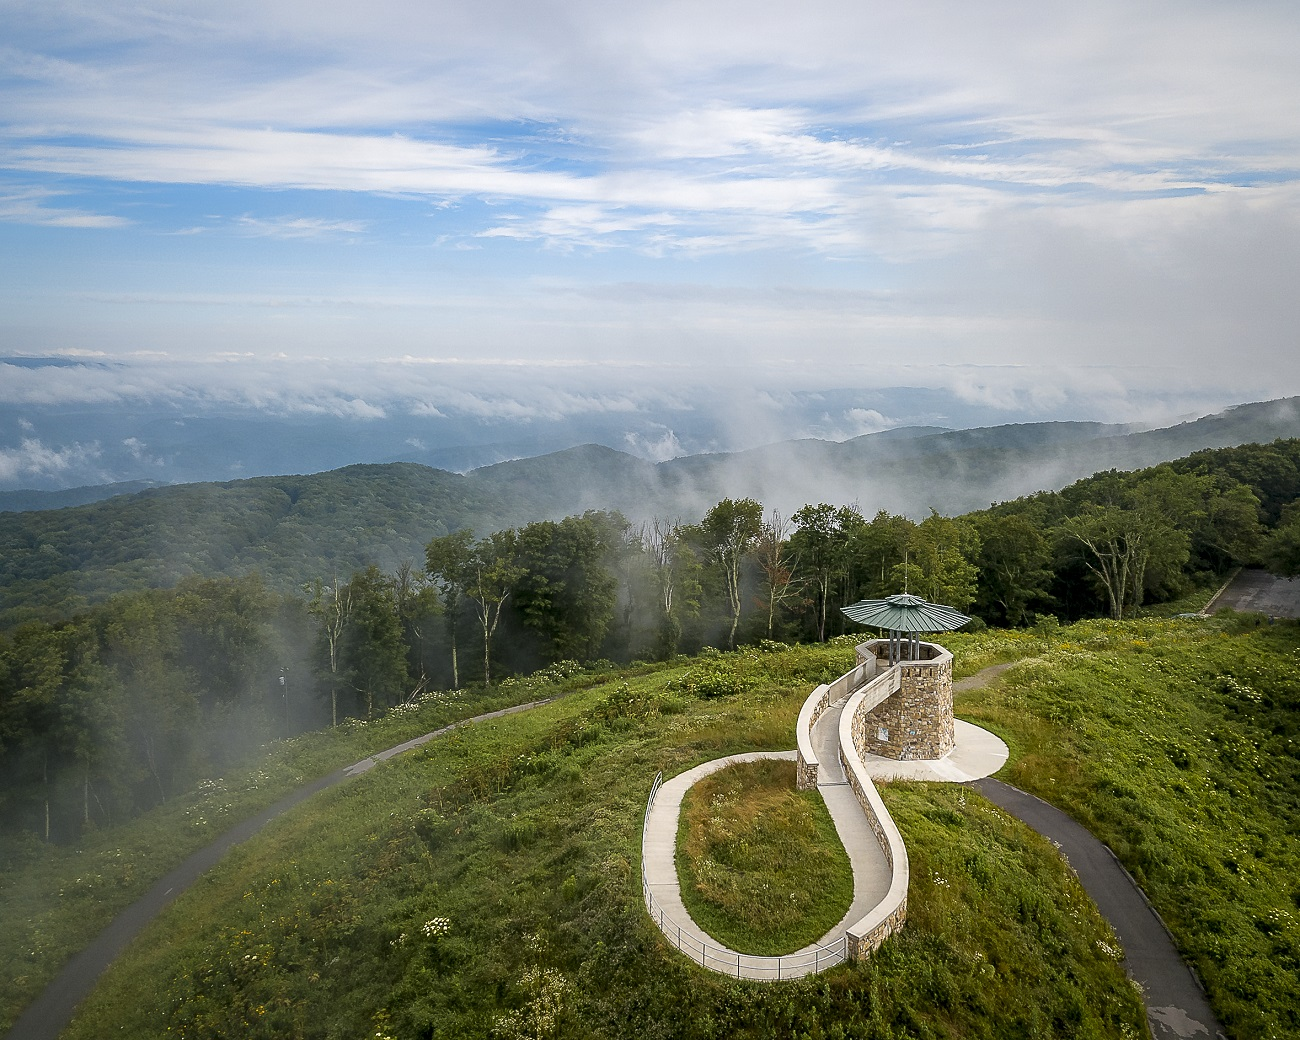 High Knob Scenic Tower